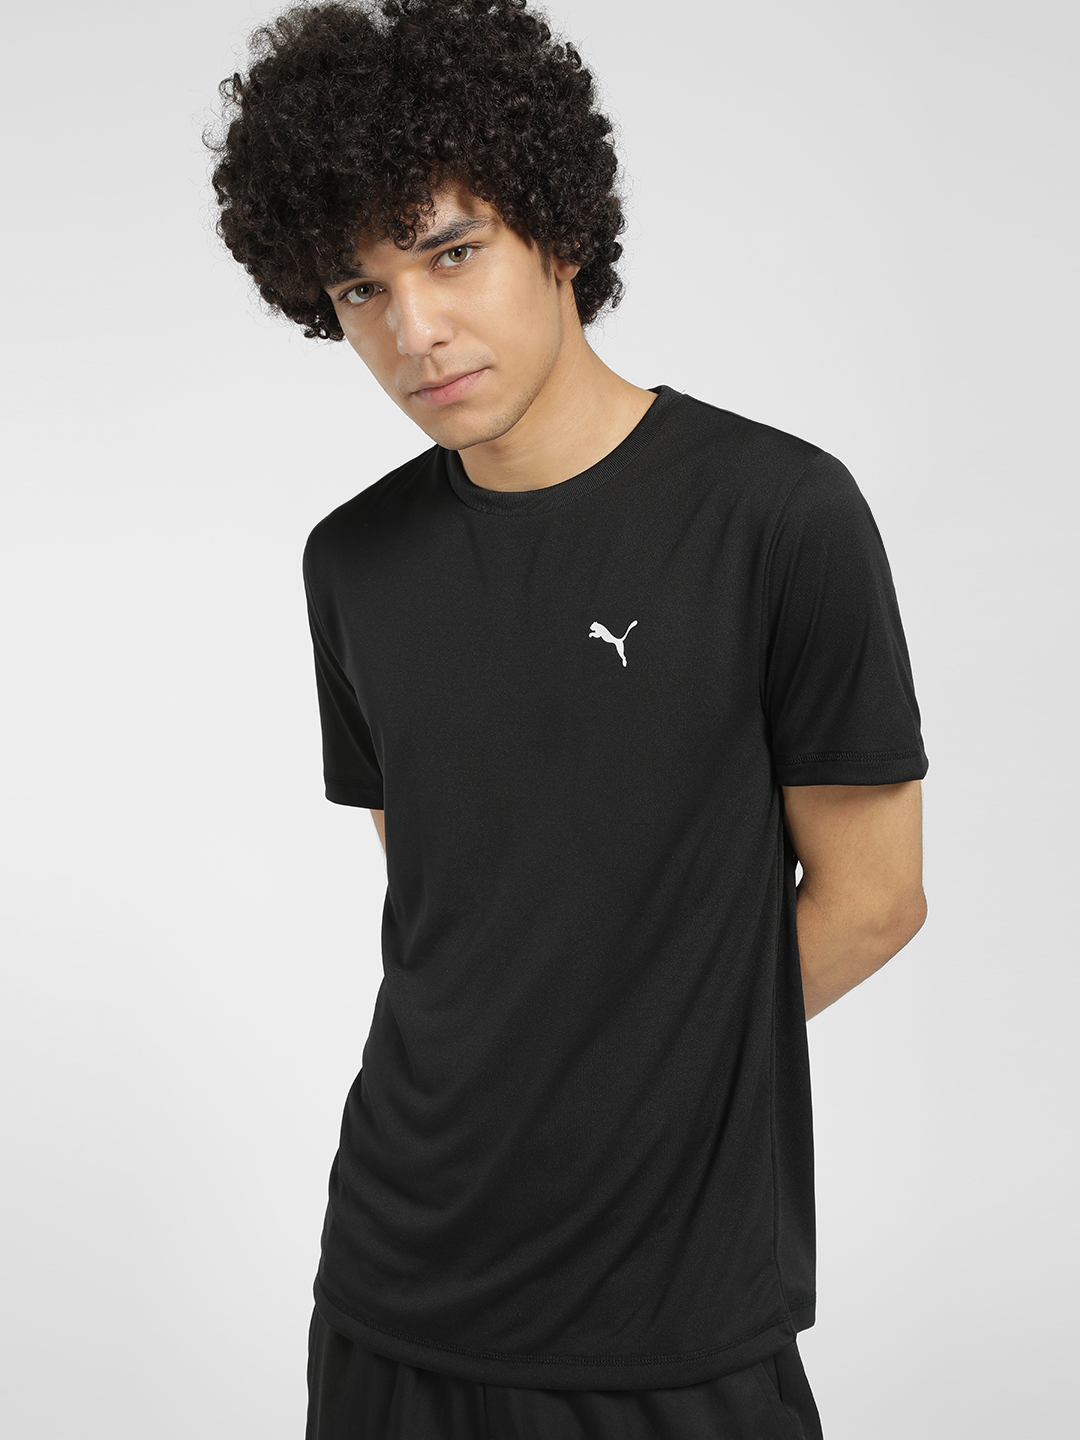 Puma Black Basic T-Shirt 1